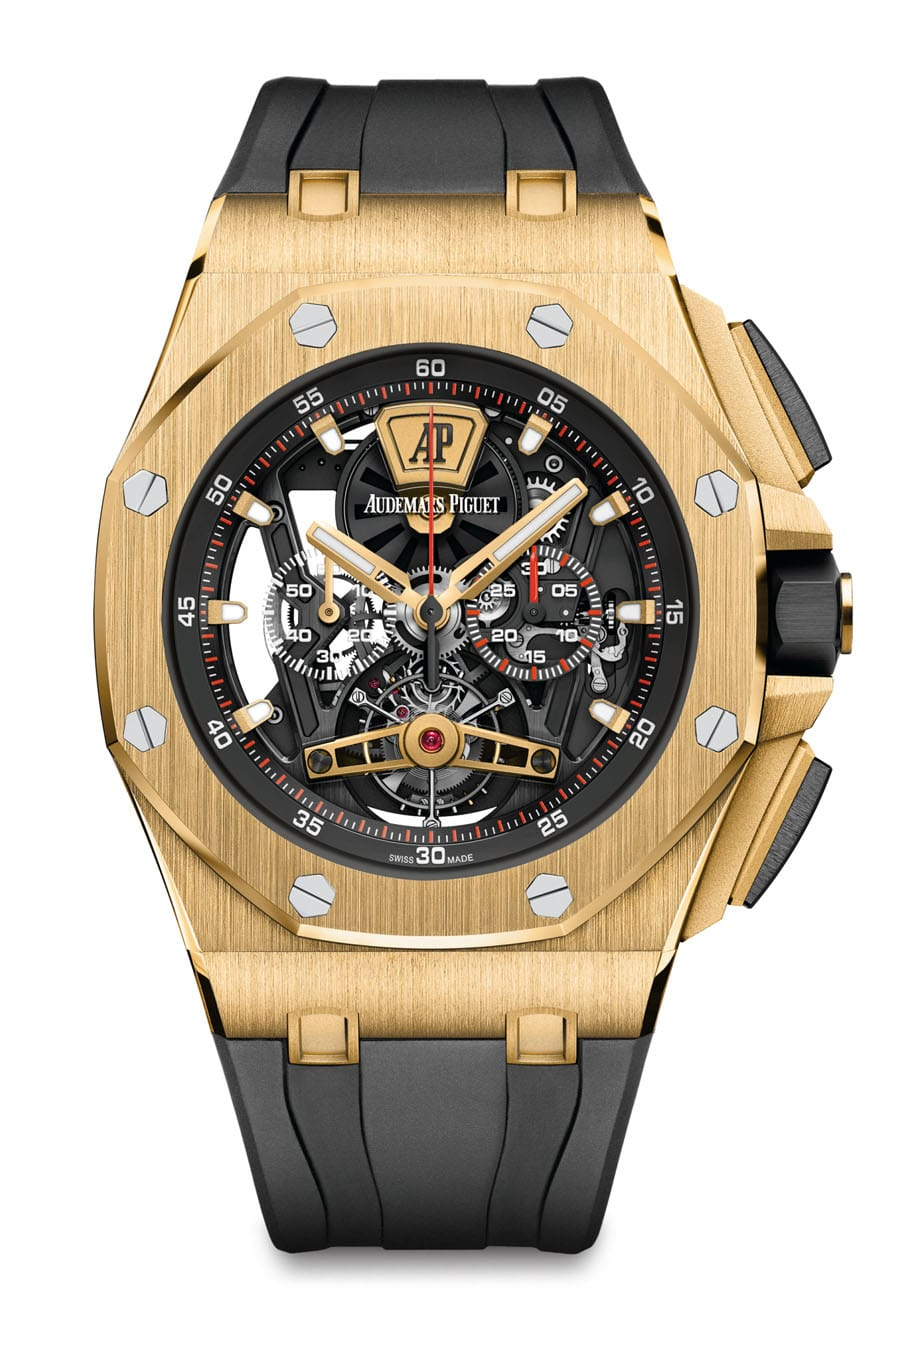 Audemars Piguet: Royal Oak Offshore Tourbillon Chronograph in der Gelbgoldversion